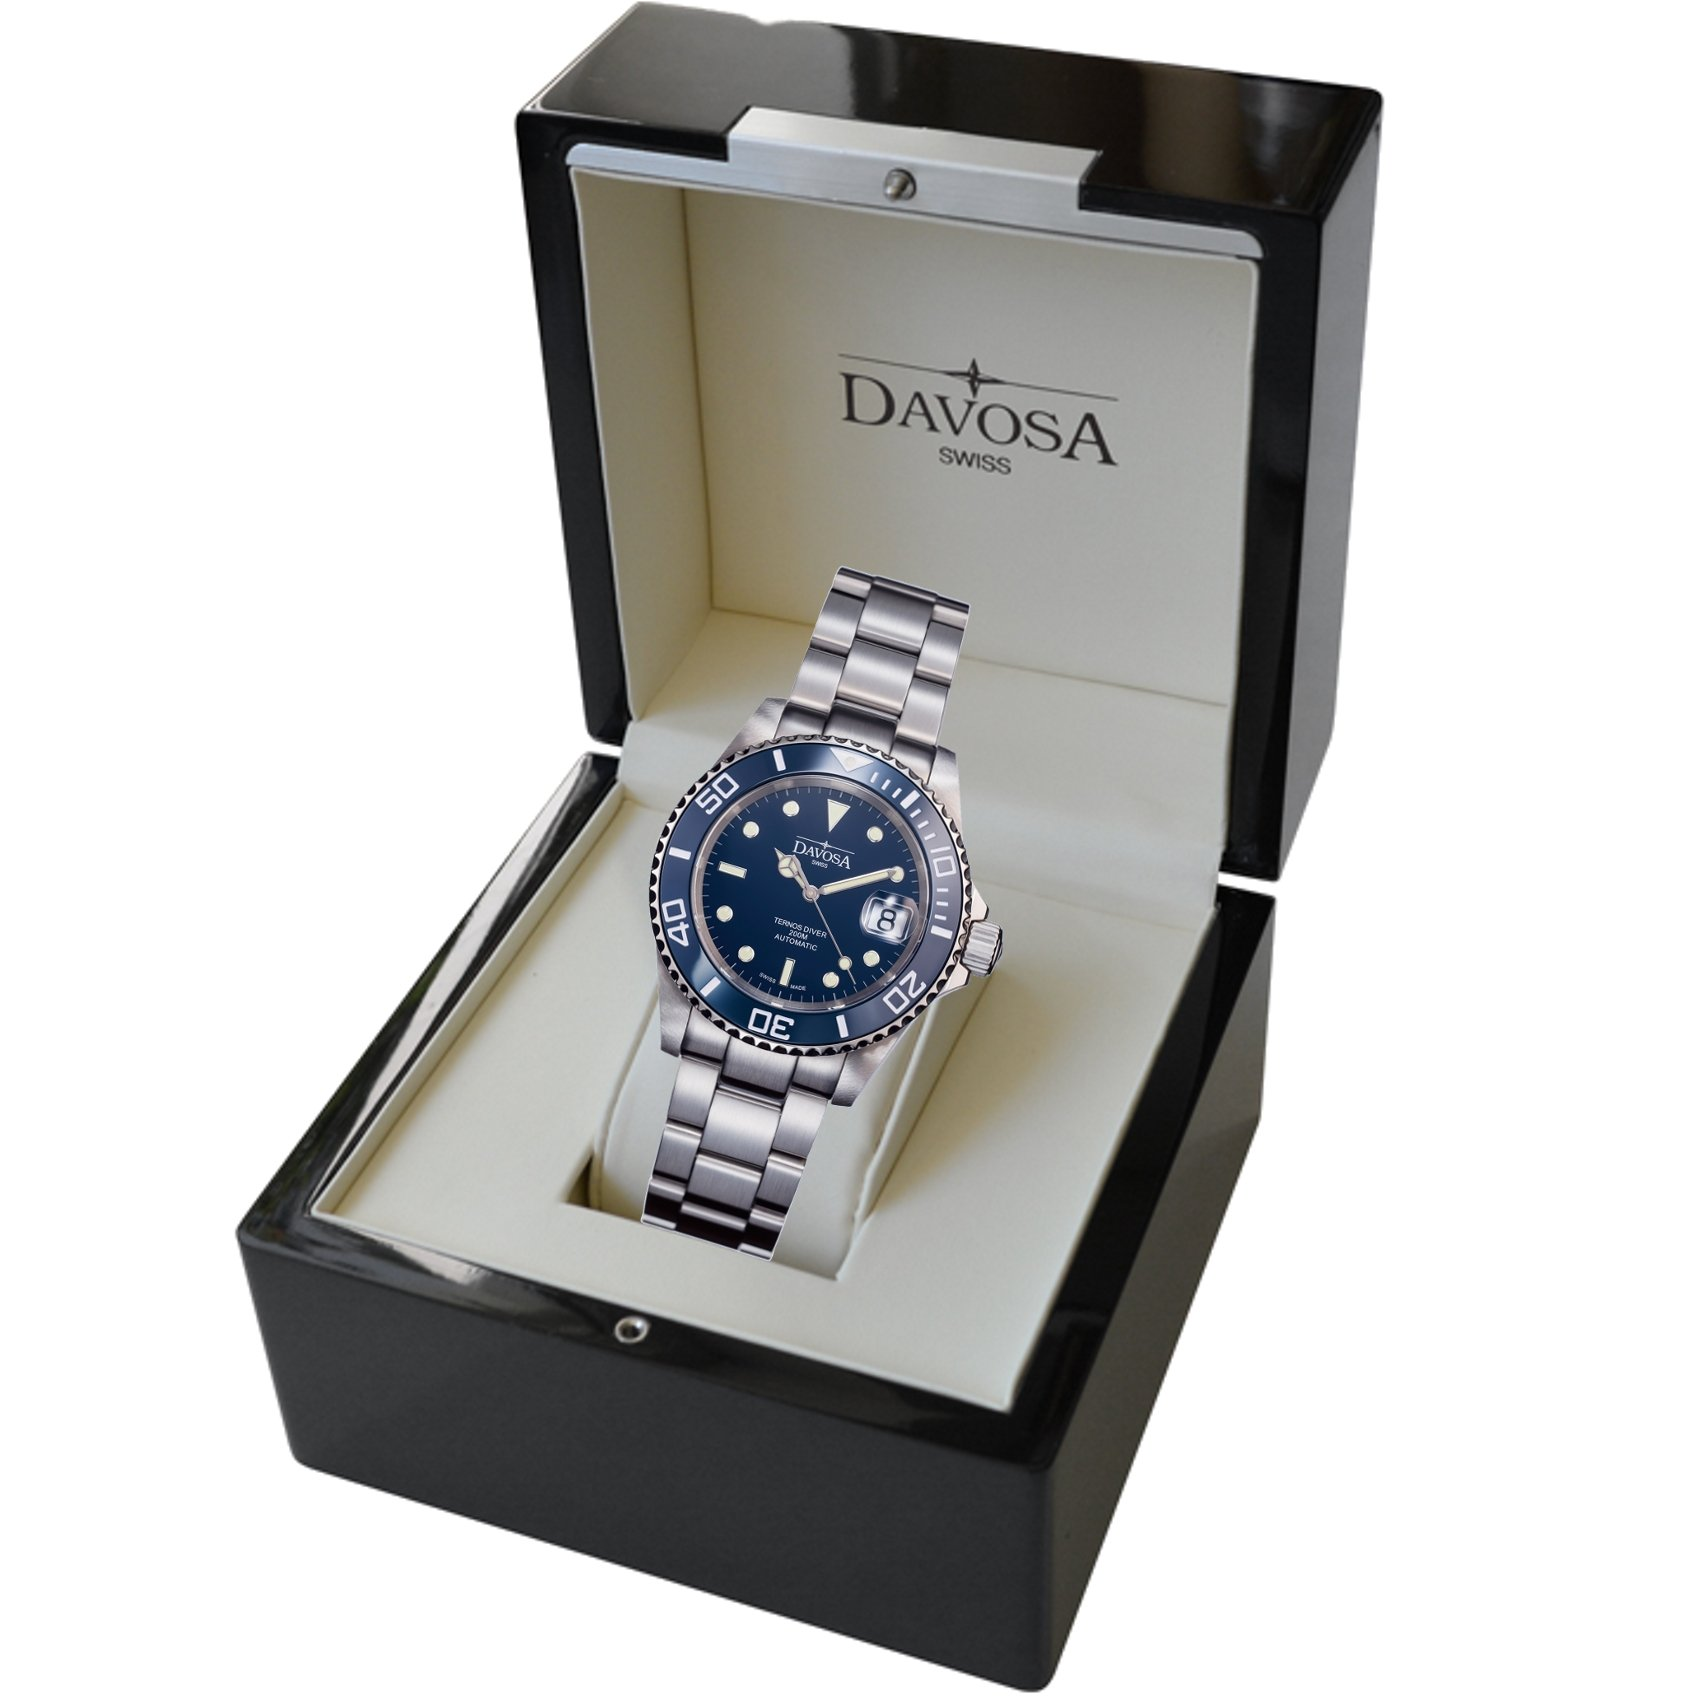 Davosa Swiss Made Men Wrist Watch, Ternos Ceramic 16155540 Professional Automatic Analog Display & Luxury Bezel by Davosa (Image #7)